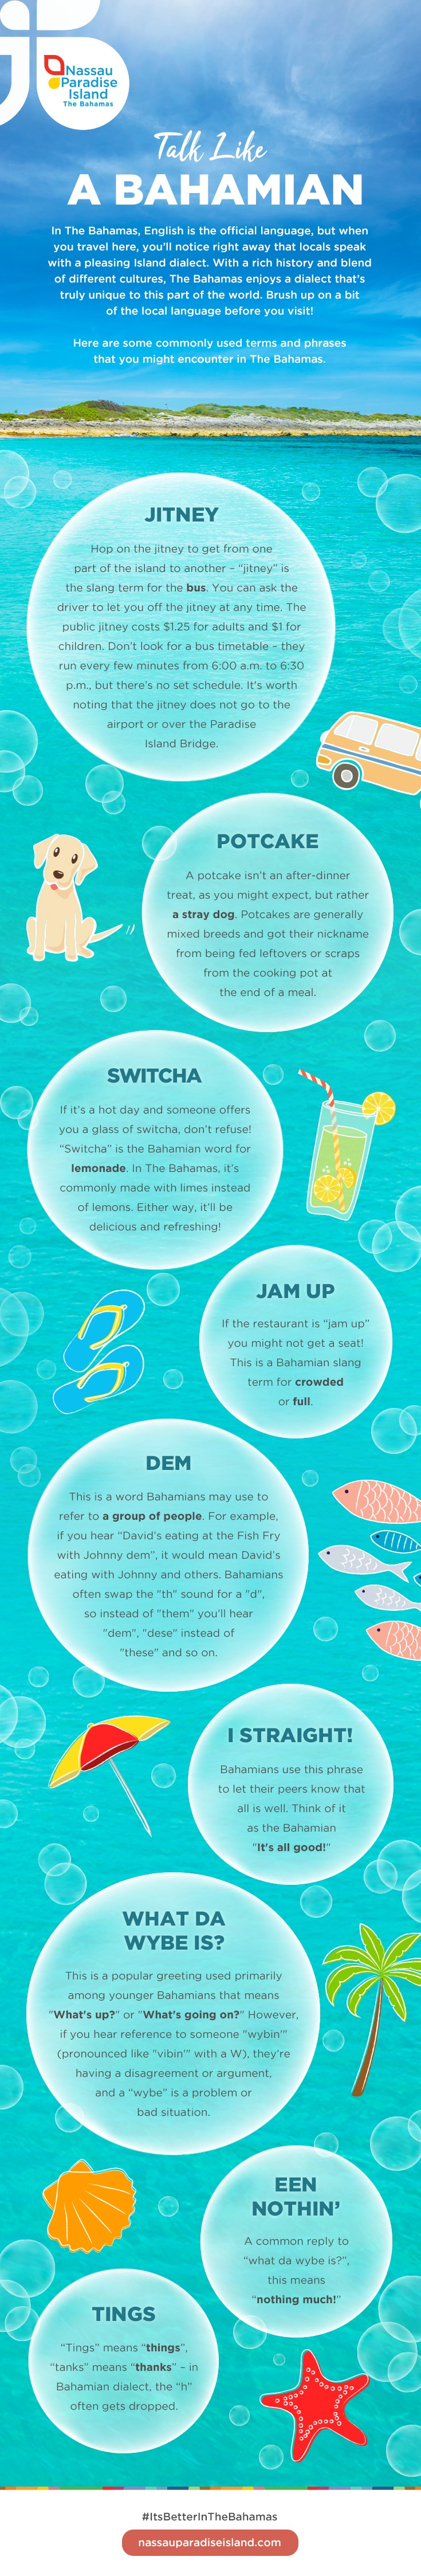 Infographic: common Bahamian words and phrases